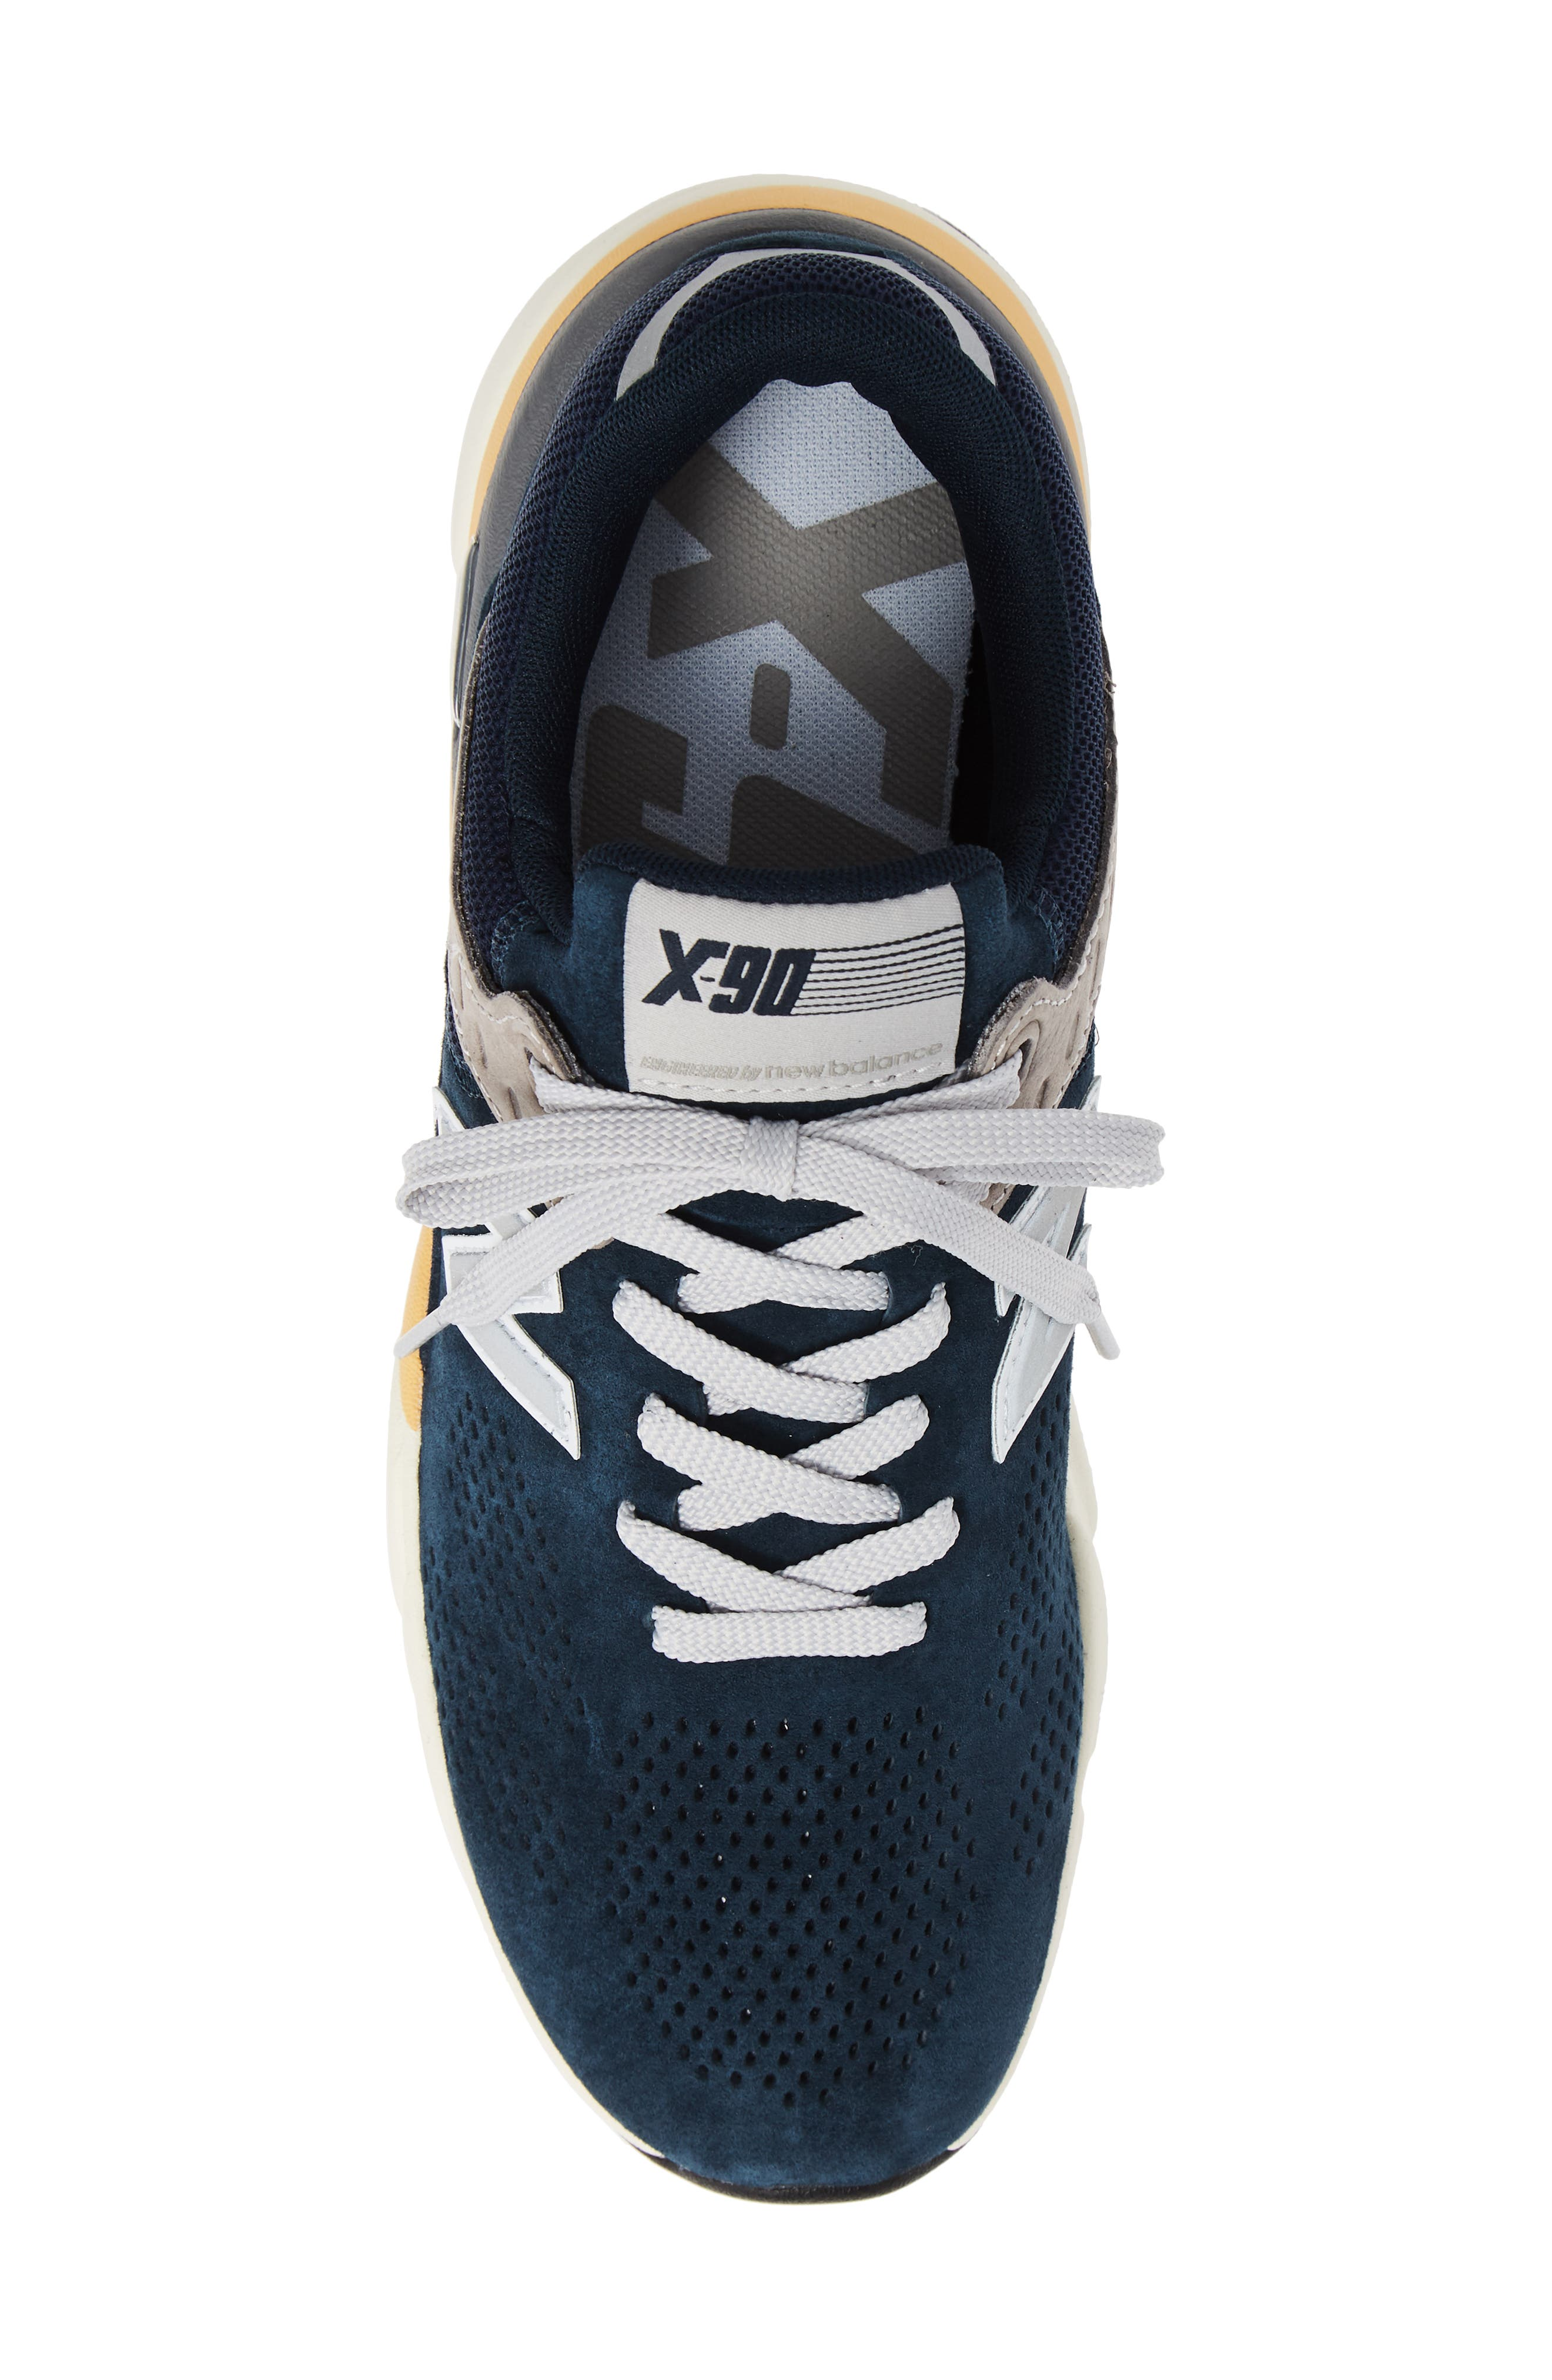 X-90 Leather Sneaker,                             Alternate thumbnail 5, color,                             NAVY SUEDE